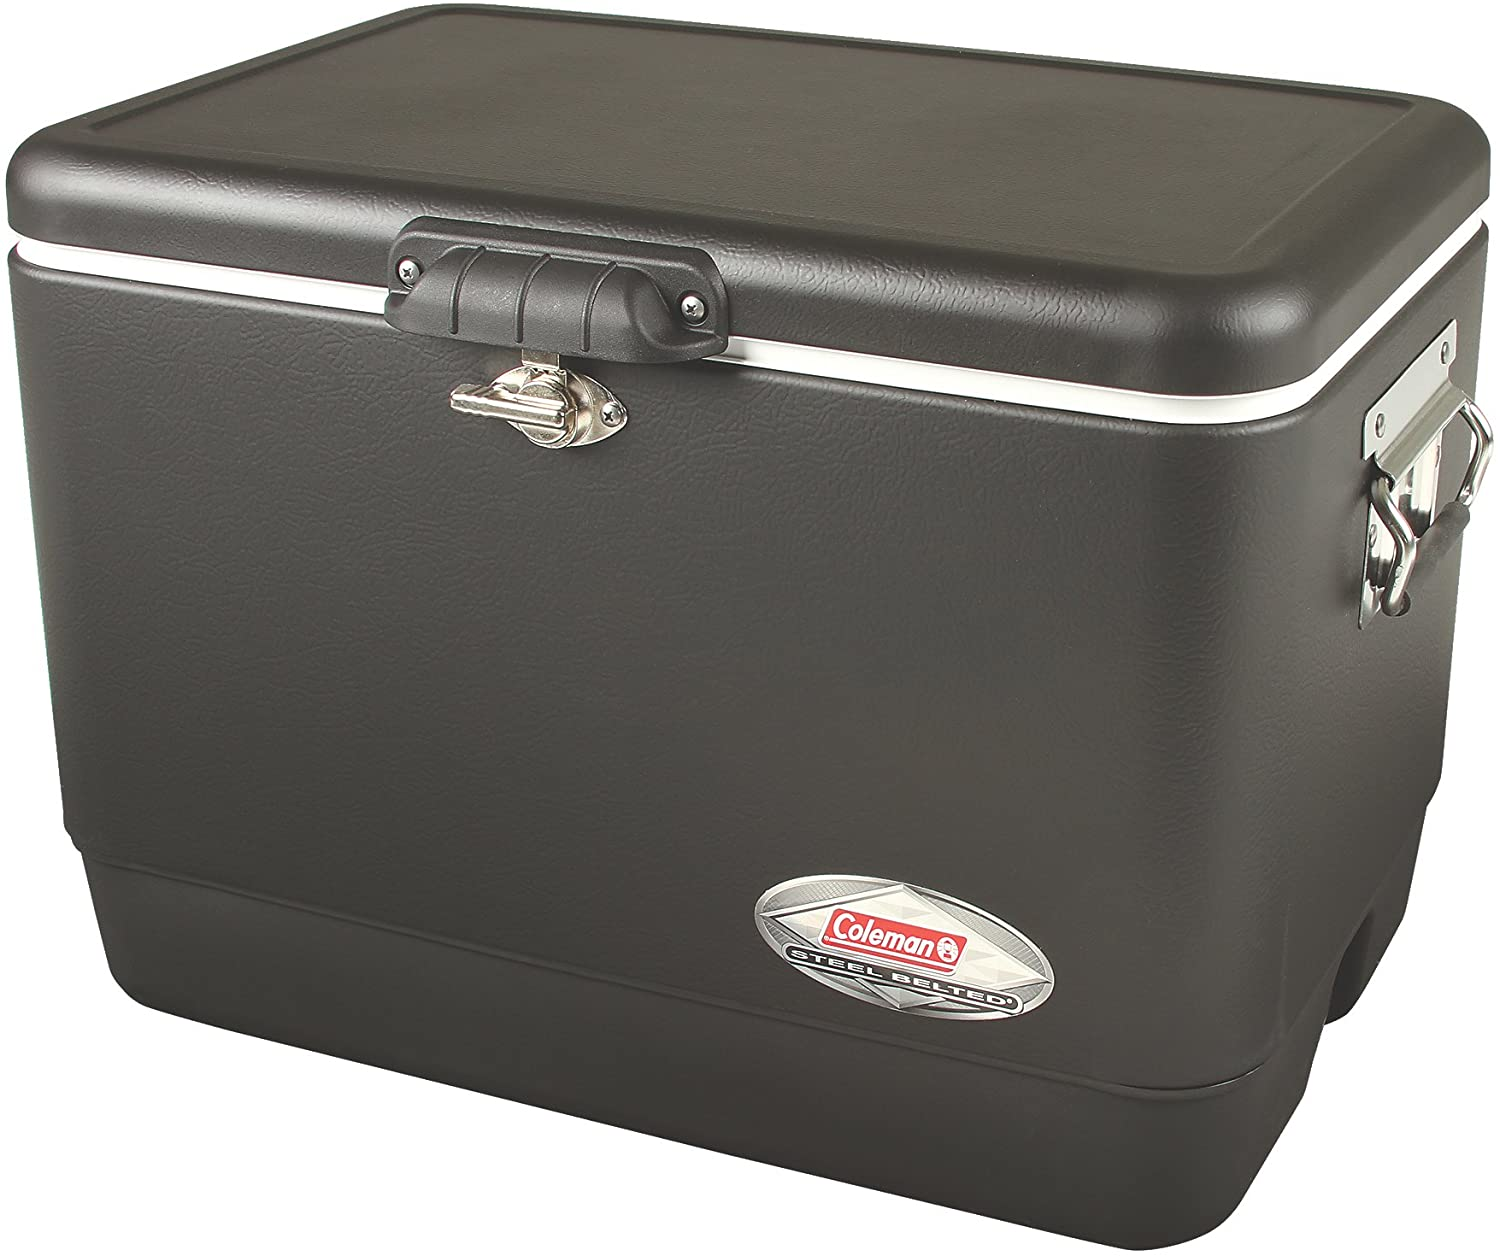 Coleman Cooler | Steel-Belted Cooler